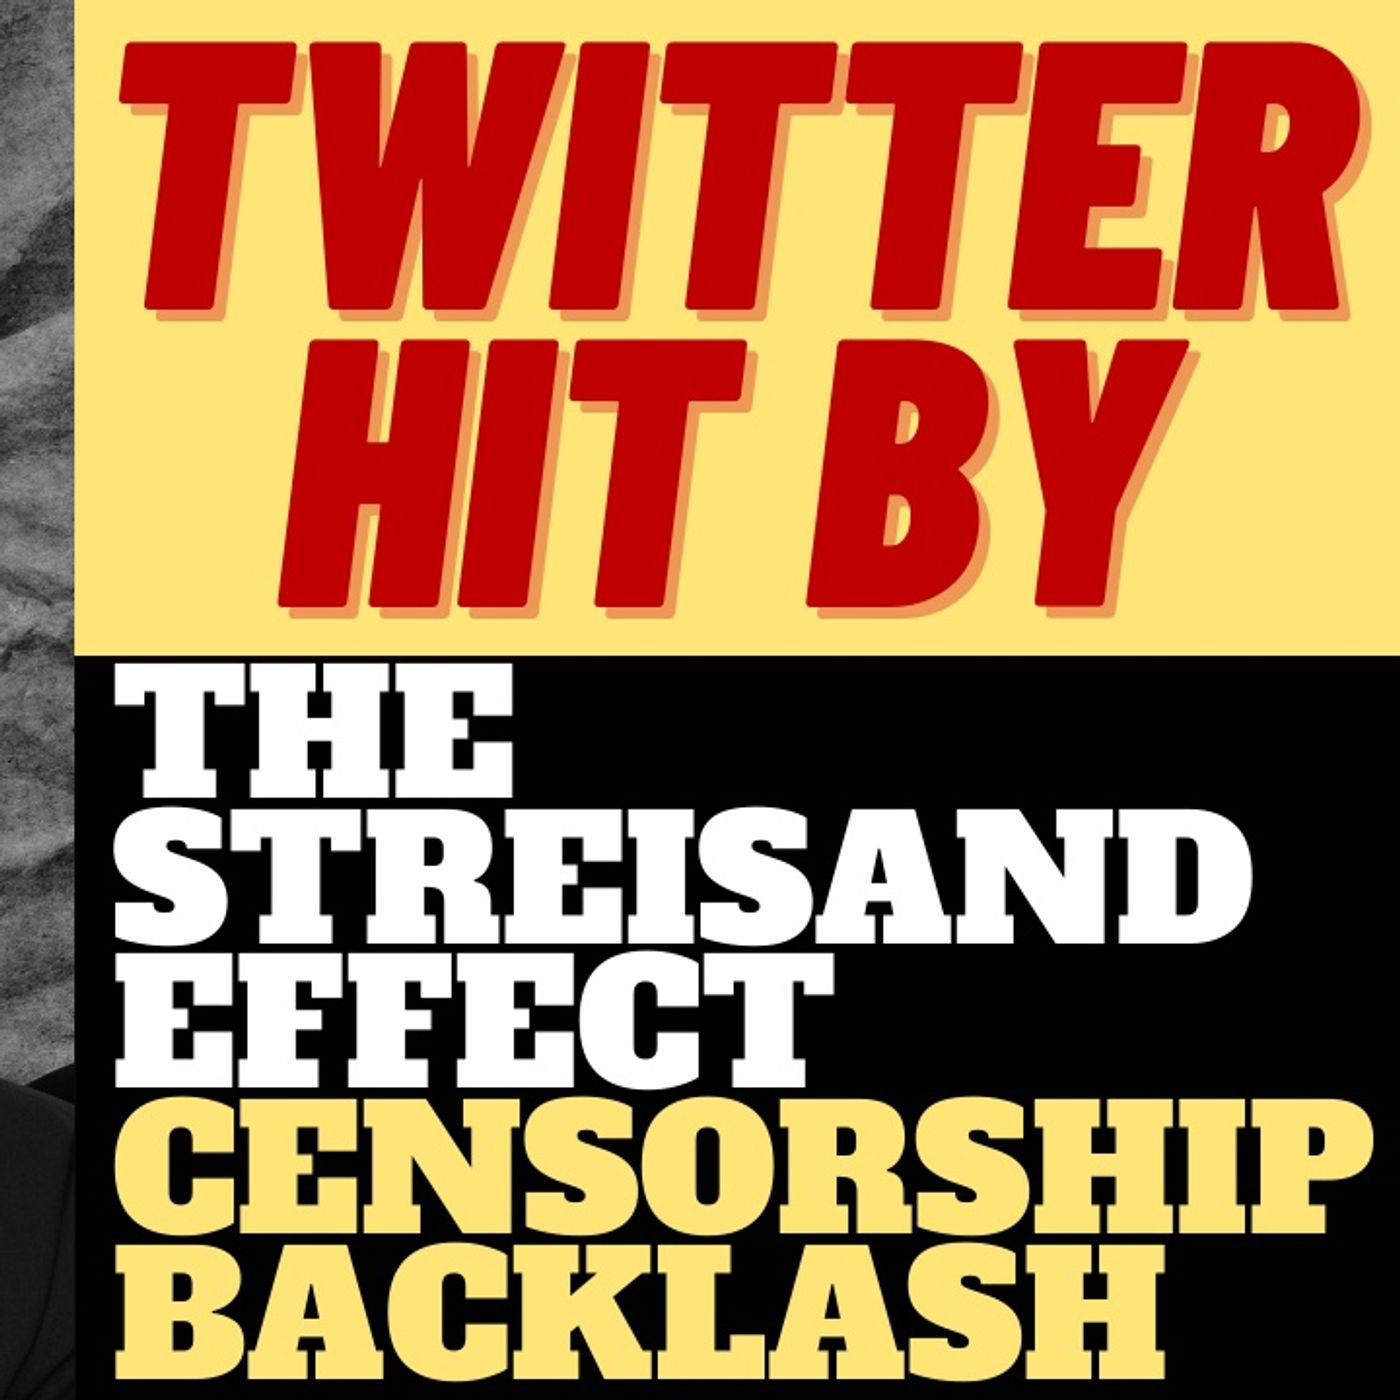 TWITTER TRIGGERS THE STREISAND EFFECT AROUND BIDEN